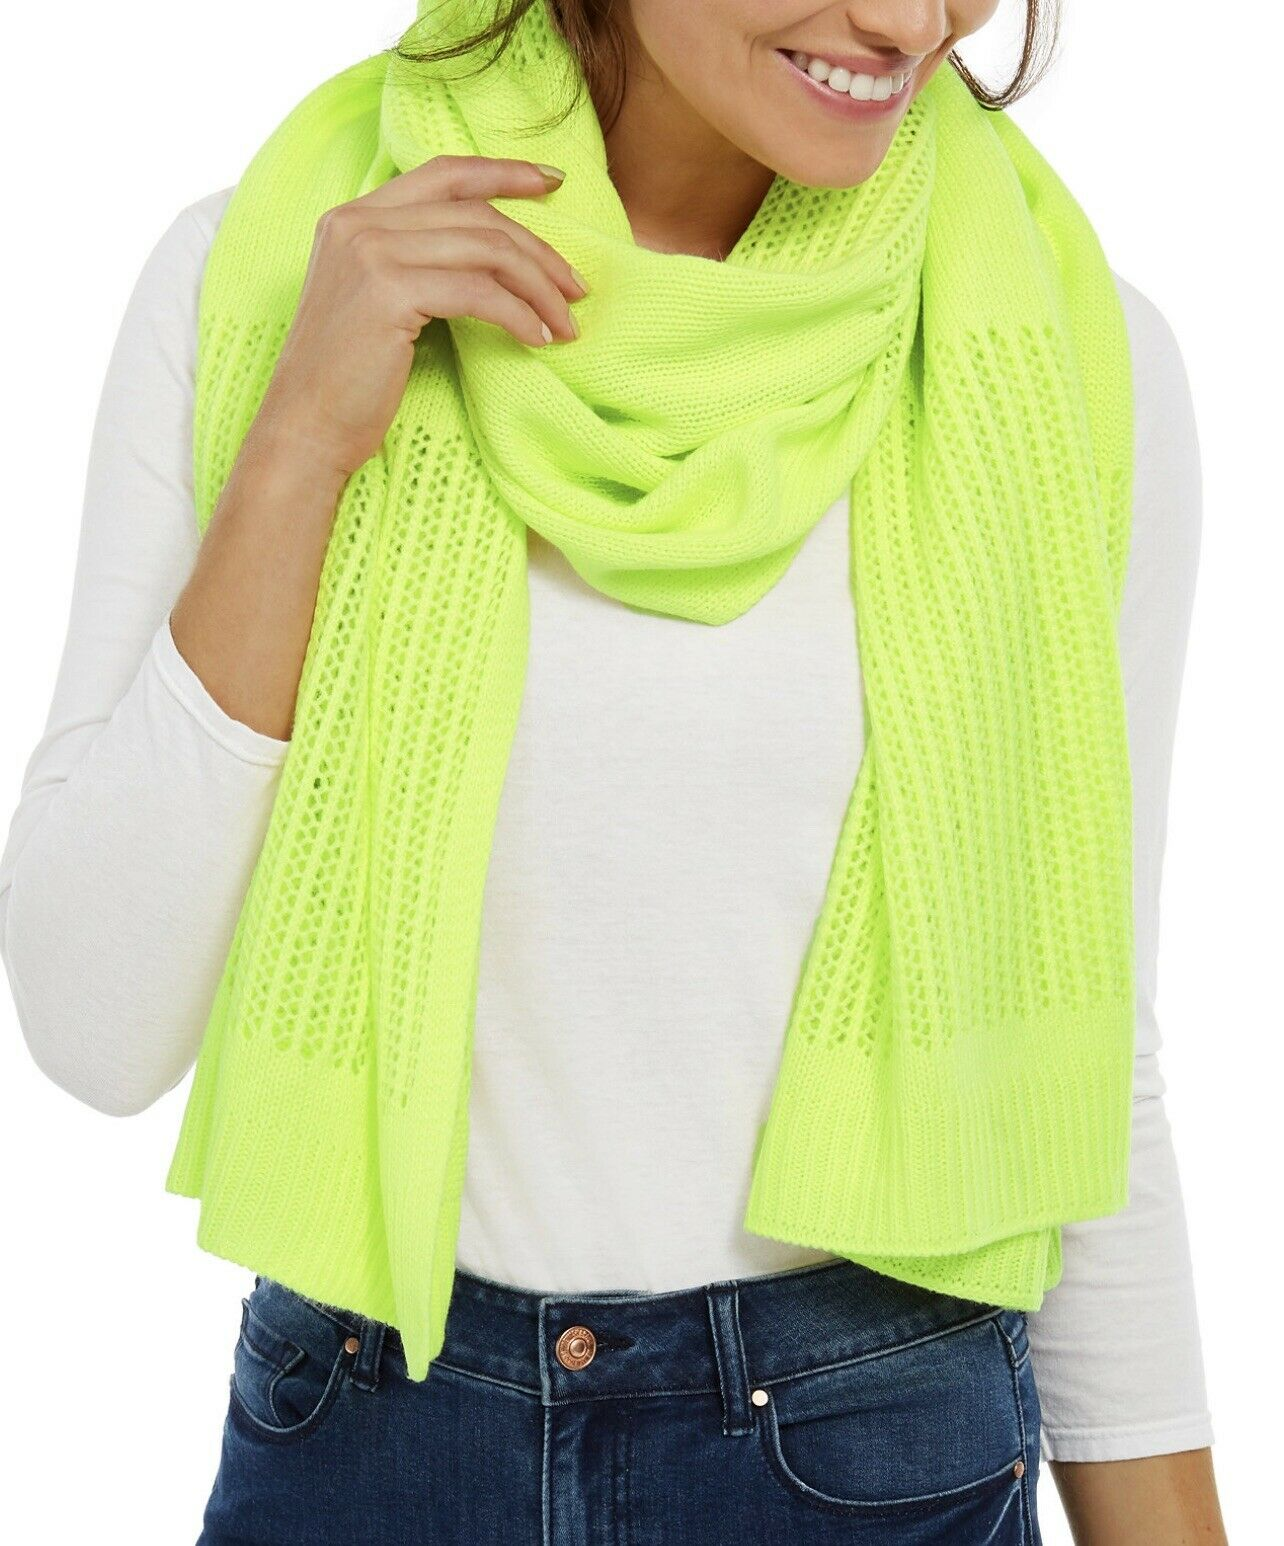 NWT DKNY Neon Yellow Open Knit Blocked Scarf